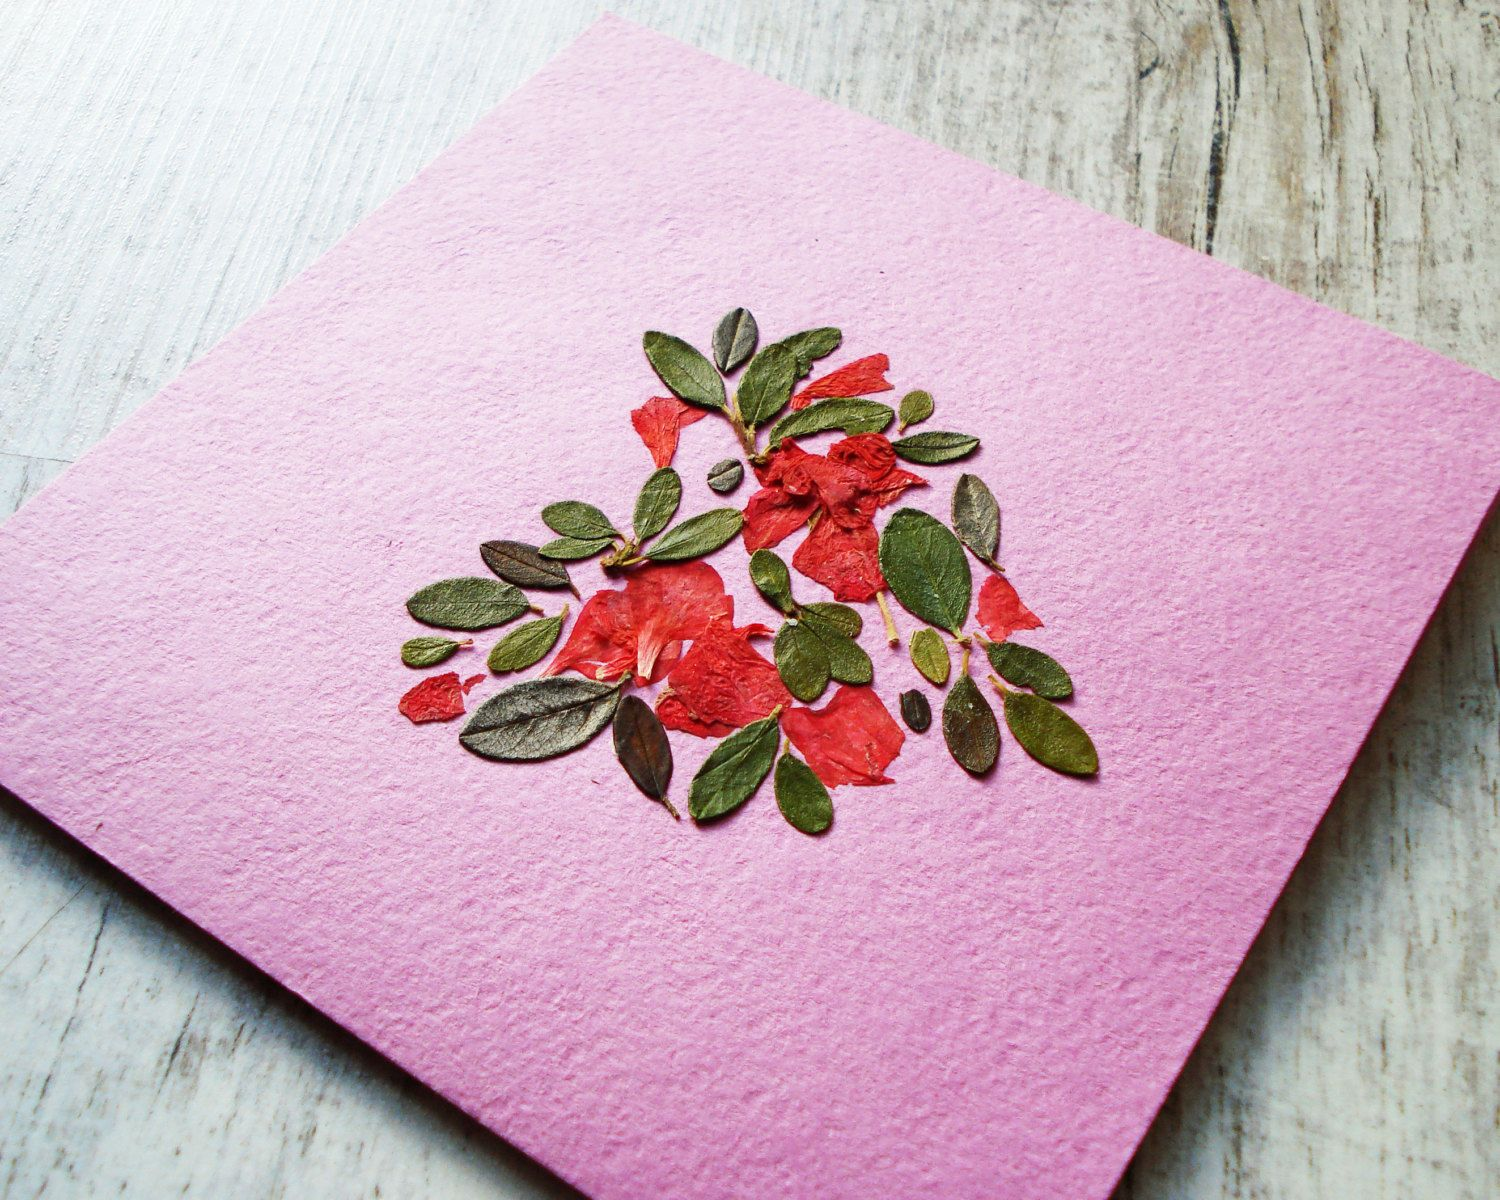 Flower greeting card pressed flower valentine card collage card flower greeting card pressed flower valentine card collage card botanical dried flower card paper handmade greeting kristyandbryce Image collections